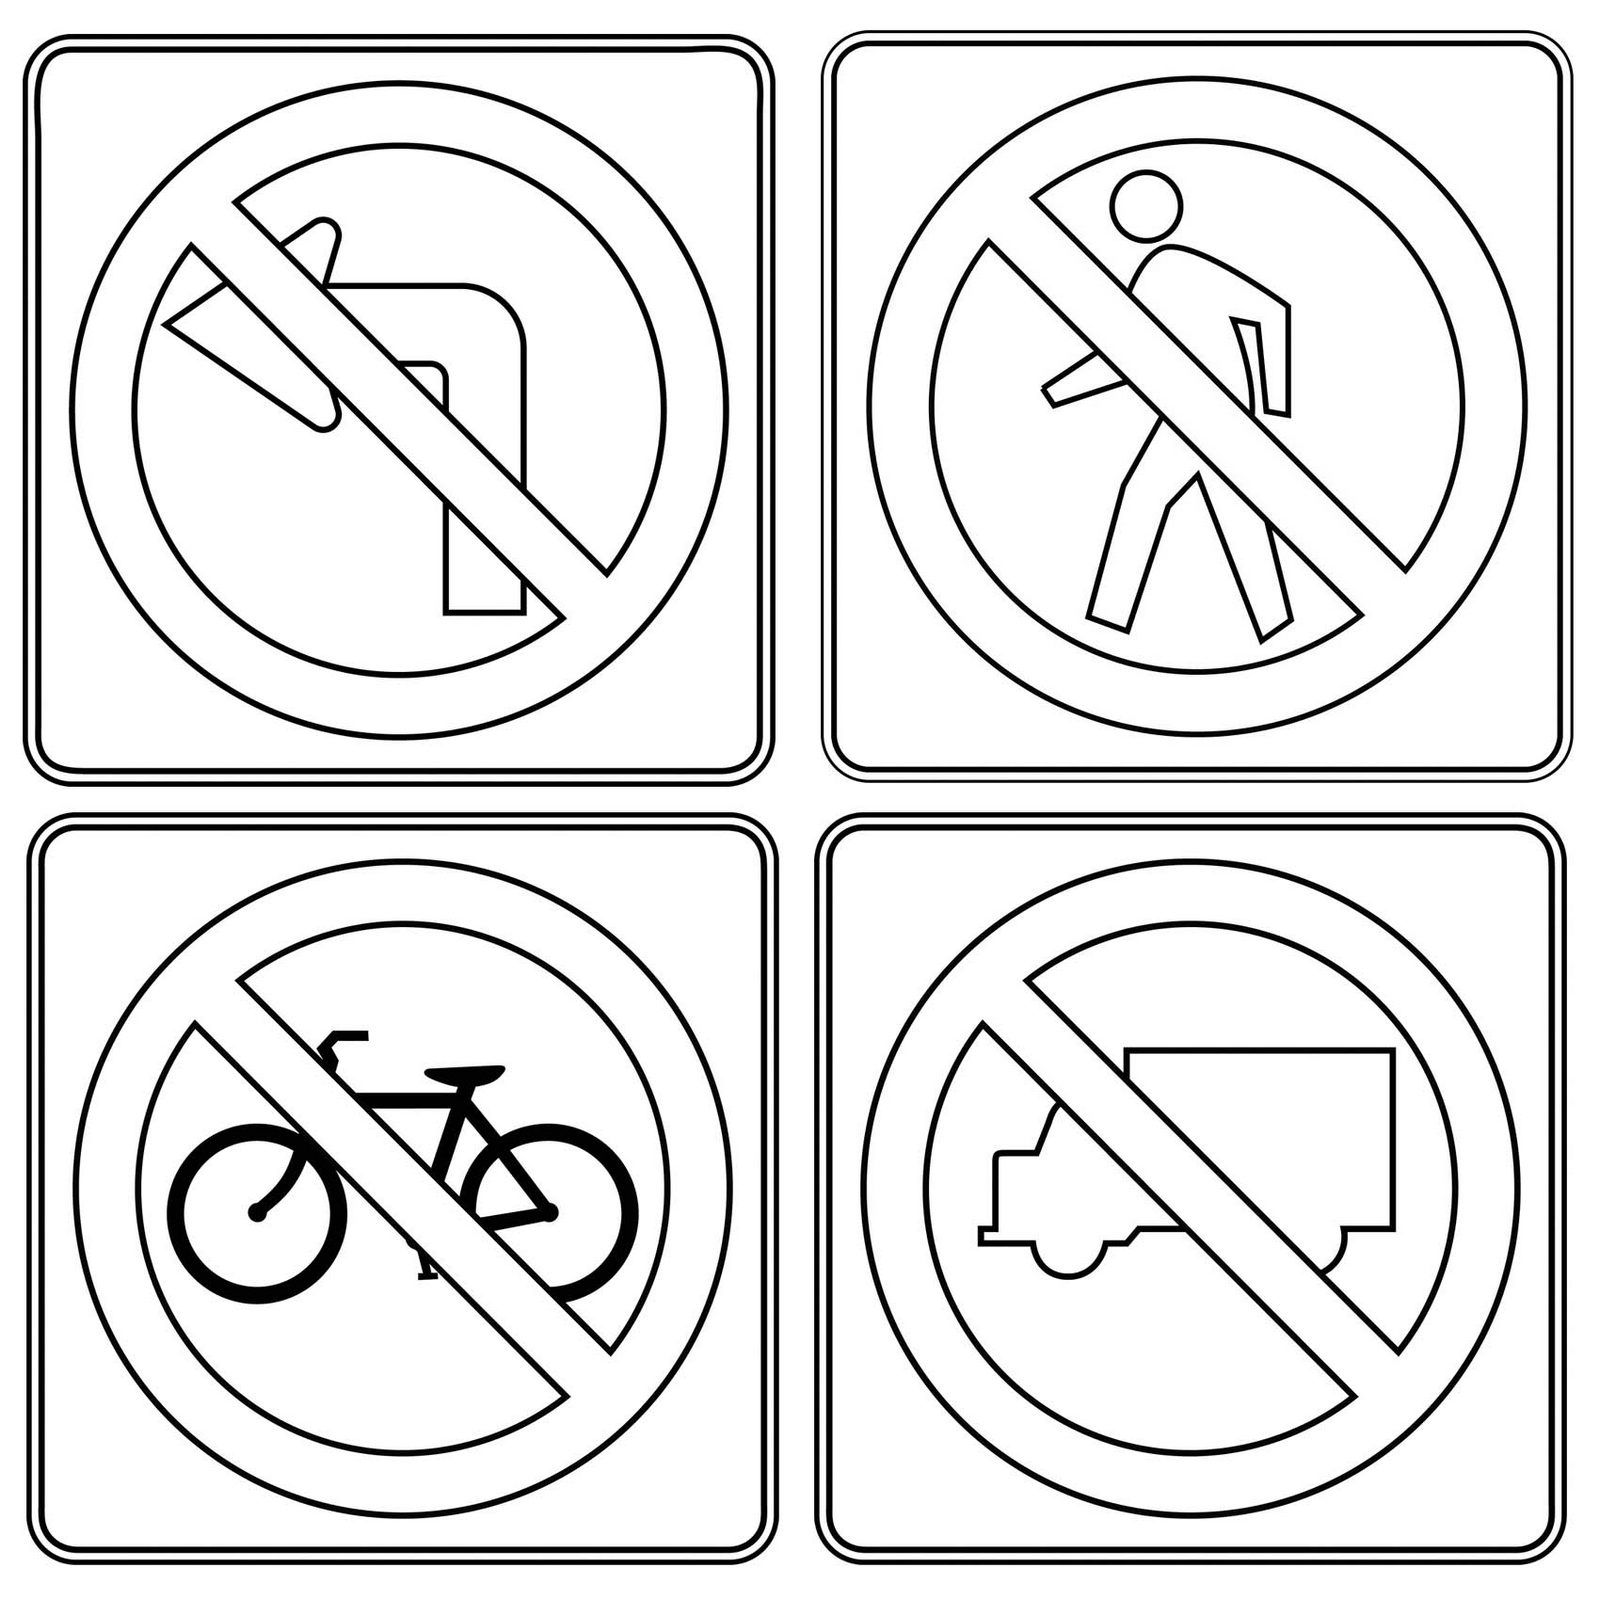 Prohibitory Traffic Sign Poster And Drawing Page In 2020 Traffic Signs Sign Poster Alphabet Coloring Pages